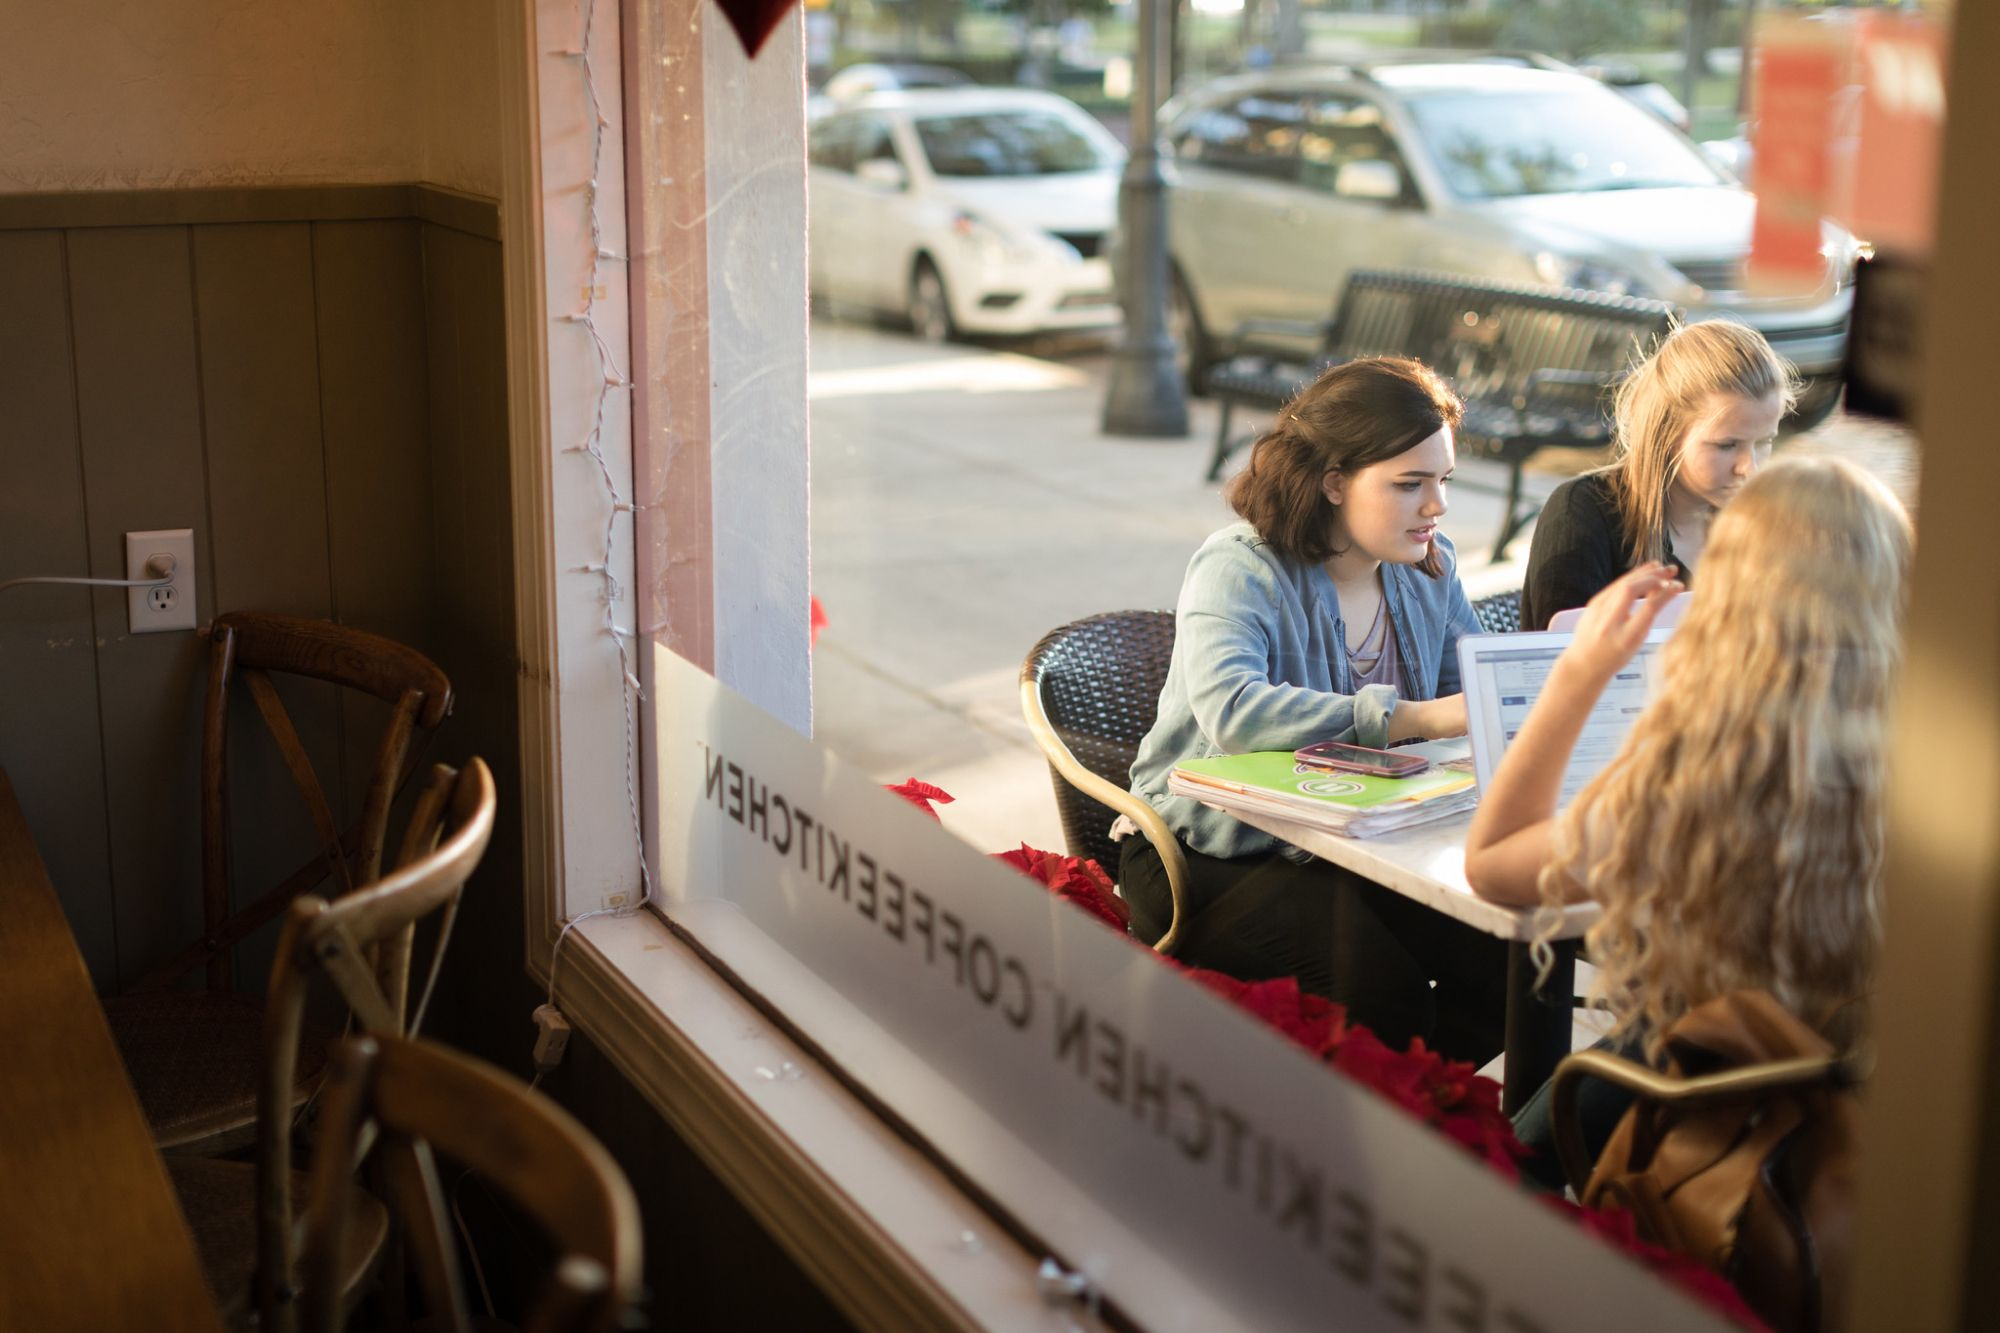 Students sit outside at Barnie's CoffeeKitchen collaborating on blog content for the company's website.